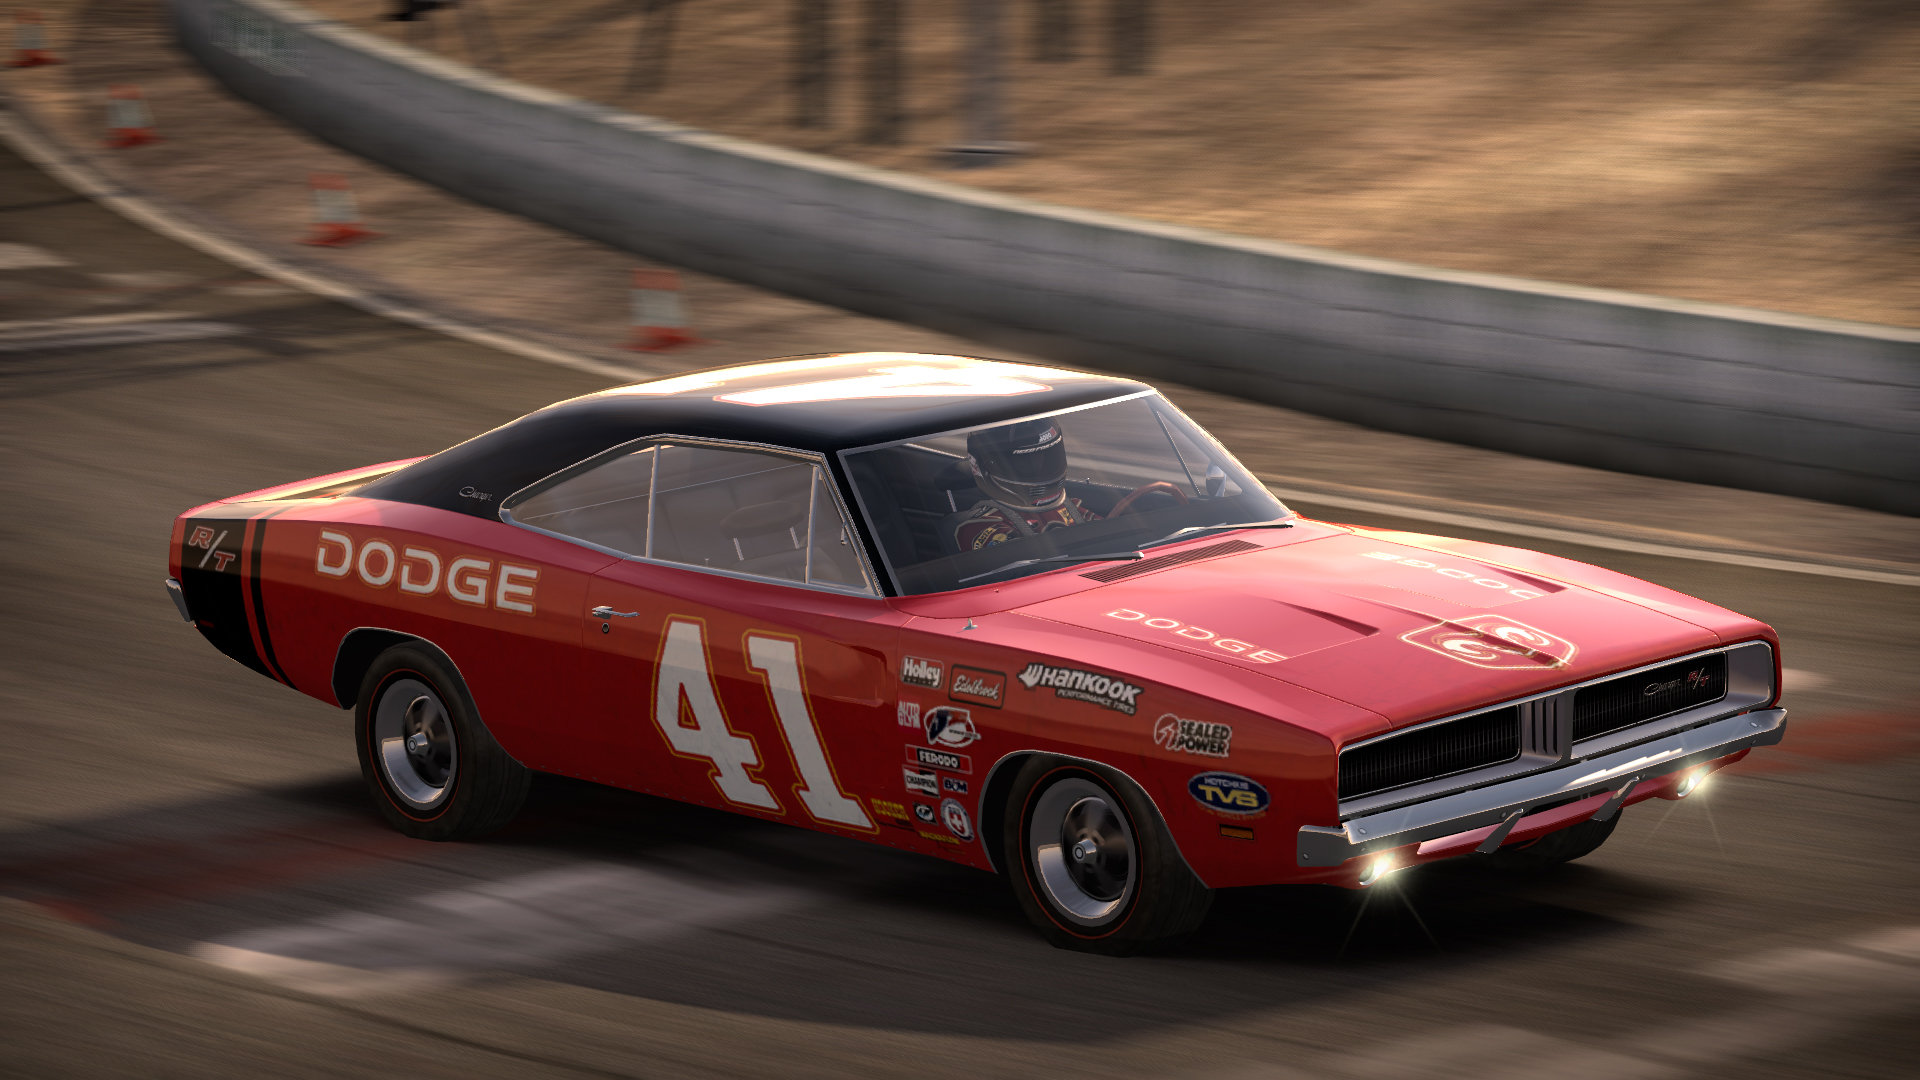 Dodge Charger Wallpaper High Definition